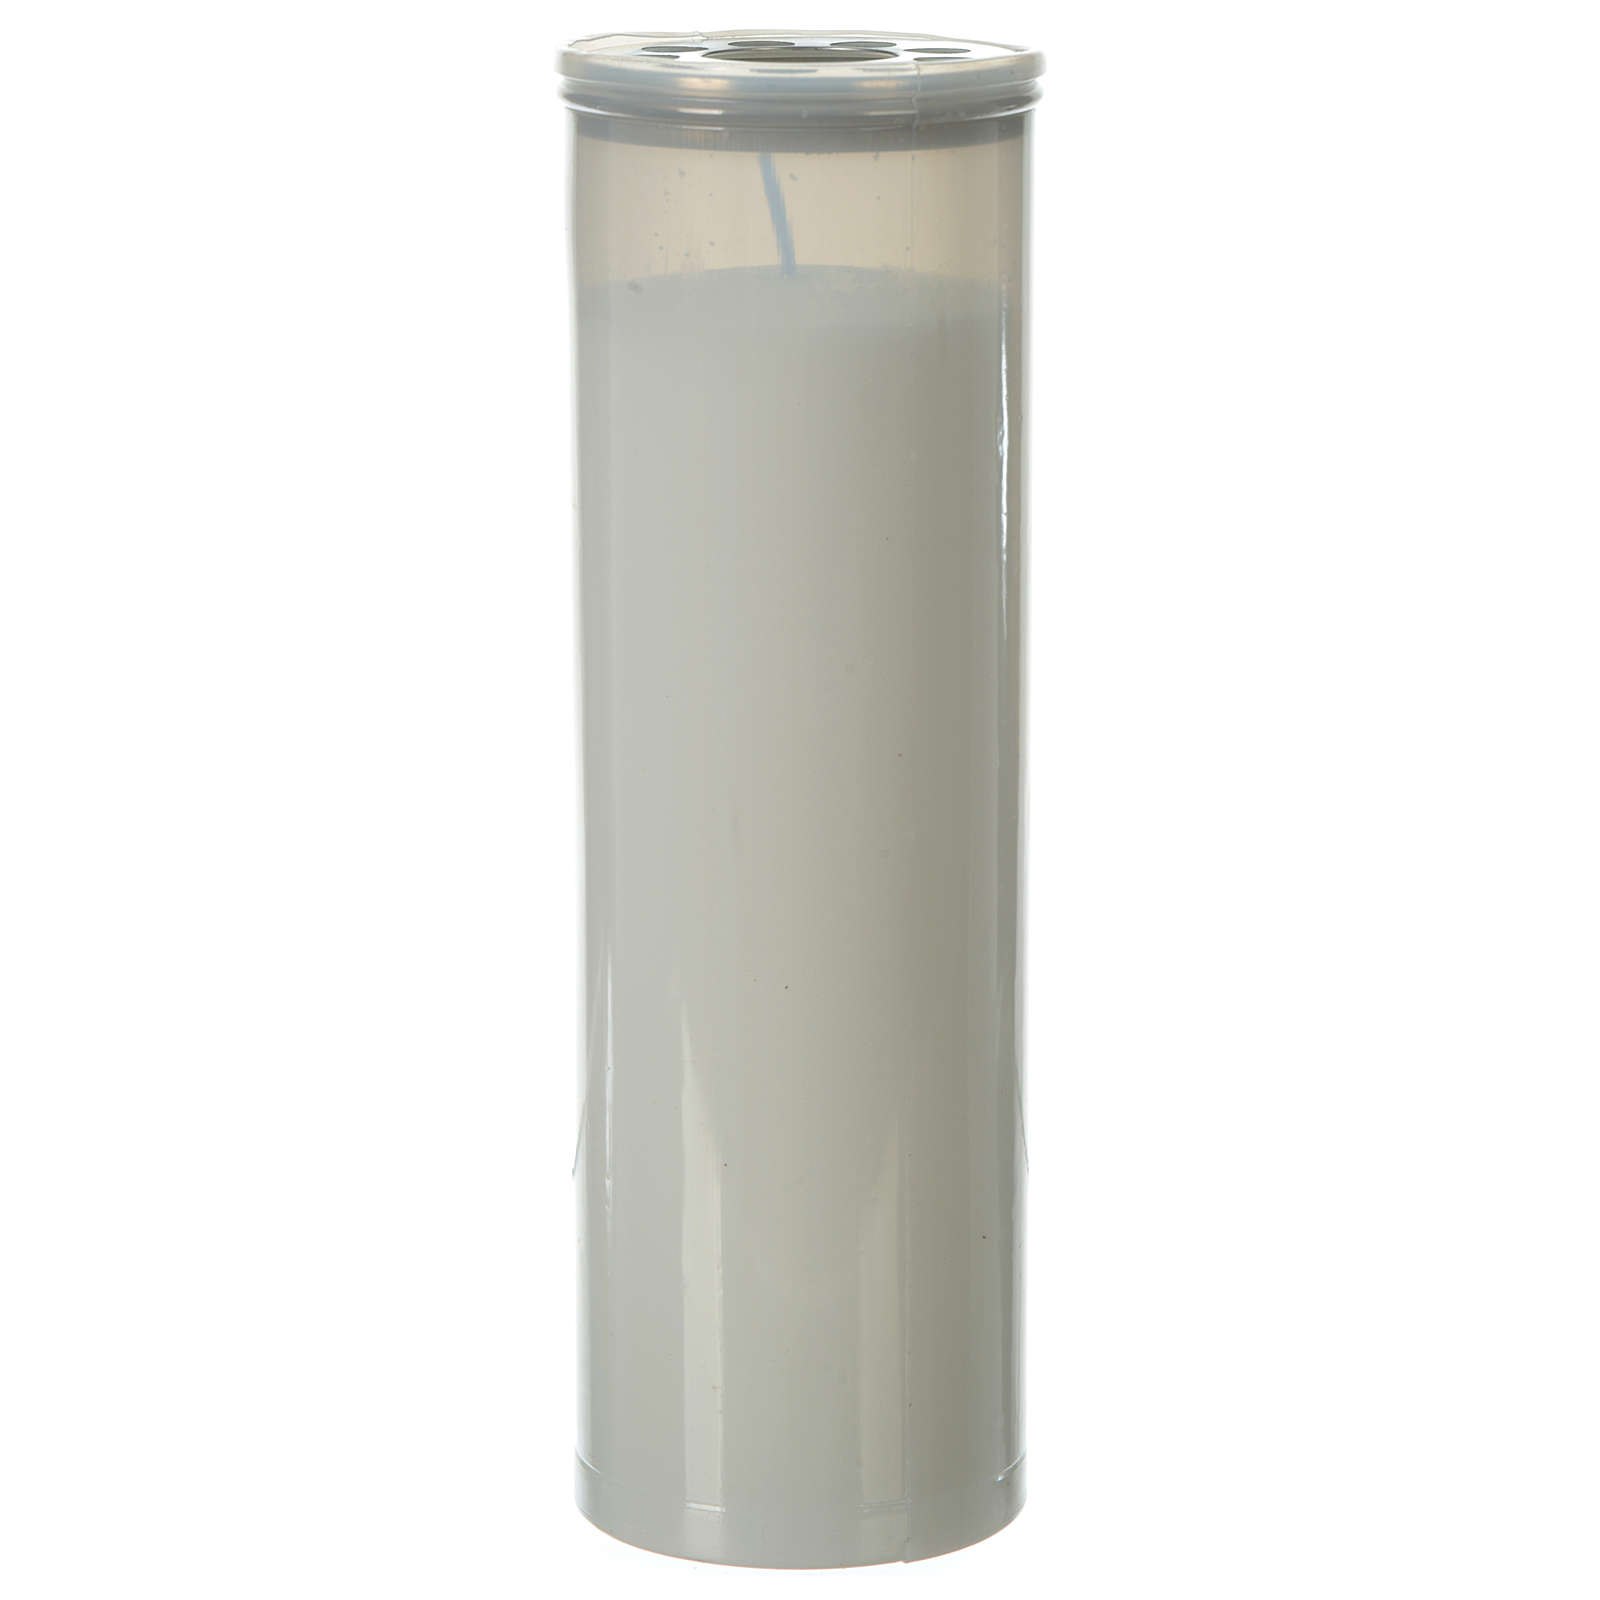 Votive candle 60T paraffin wax 3